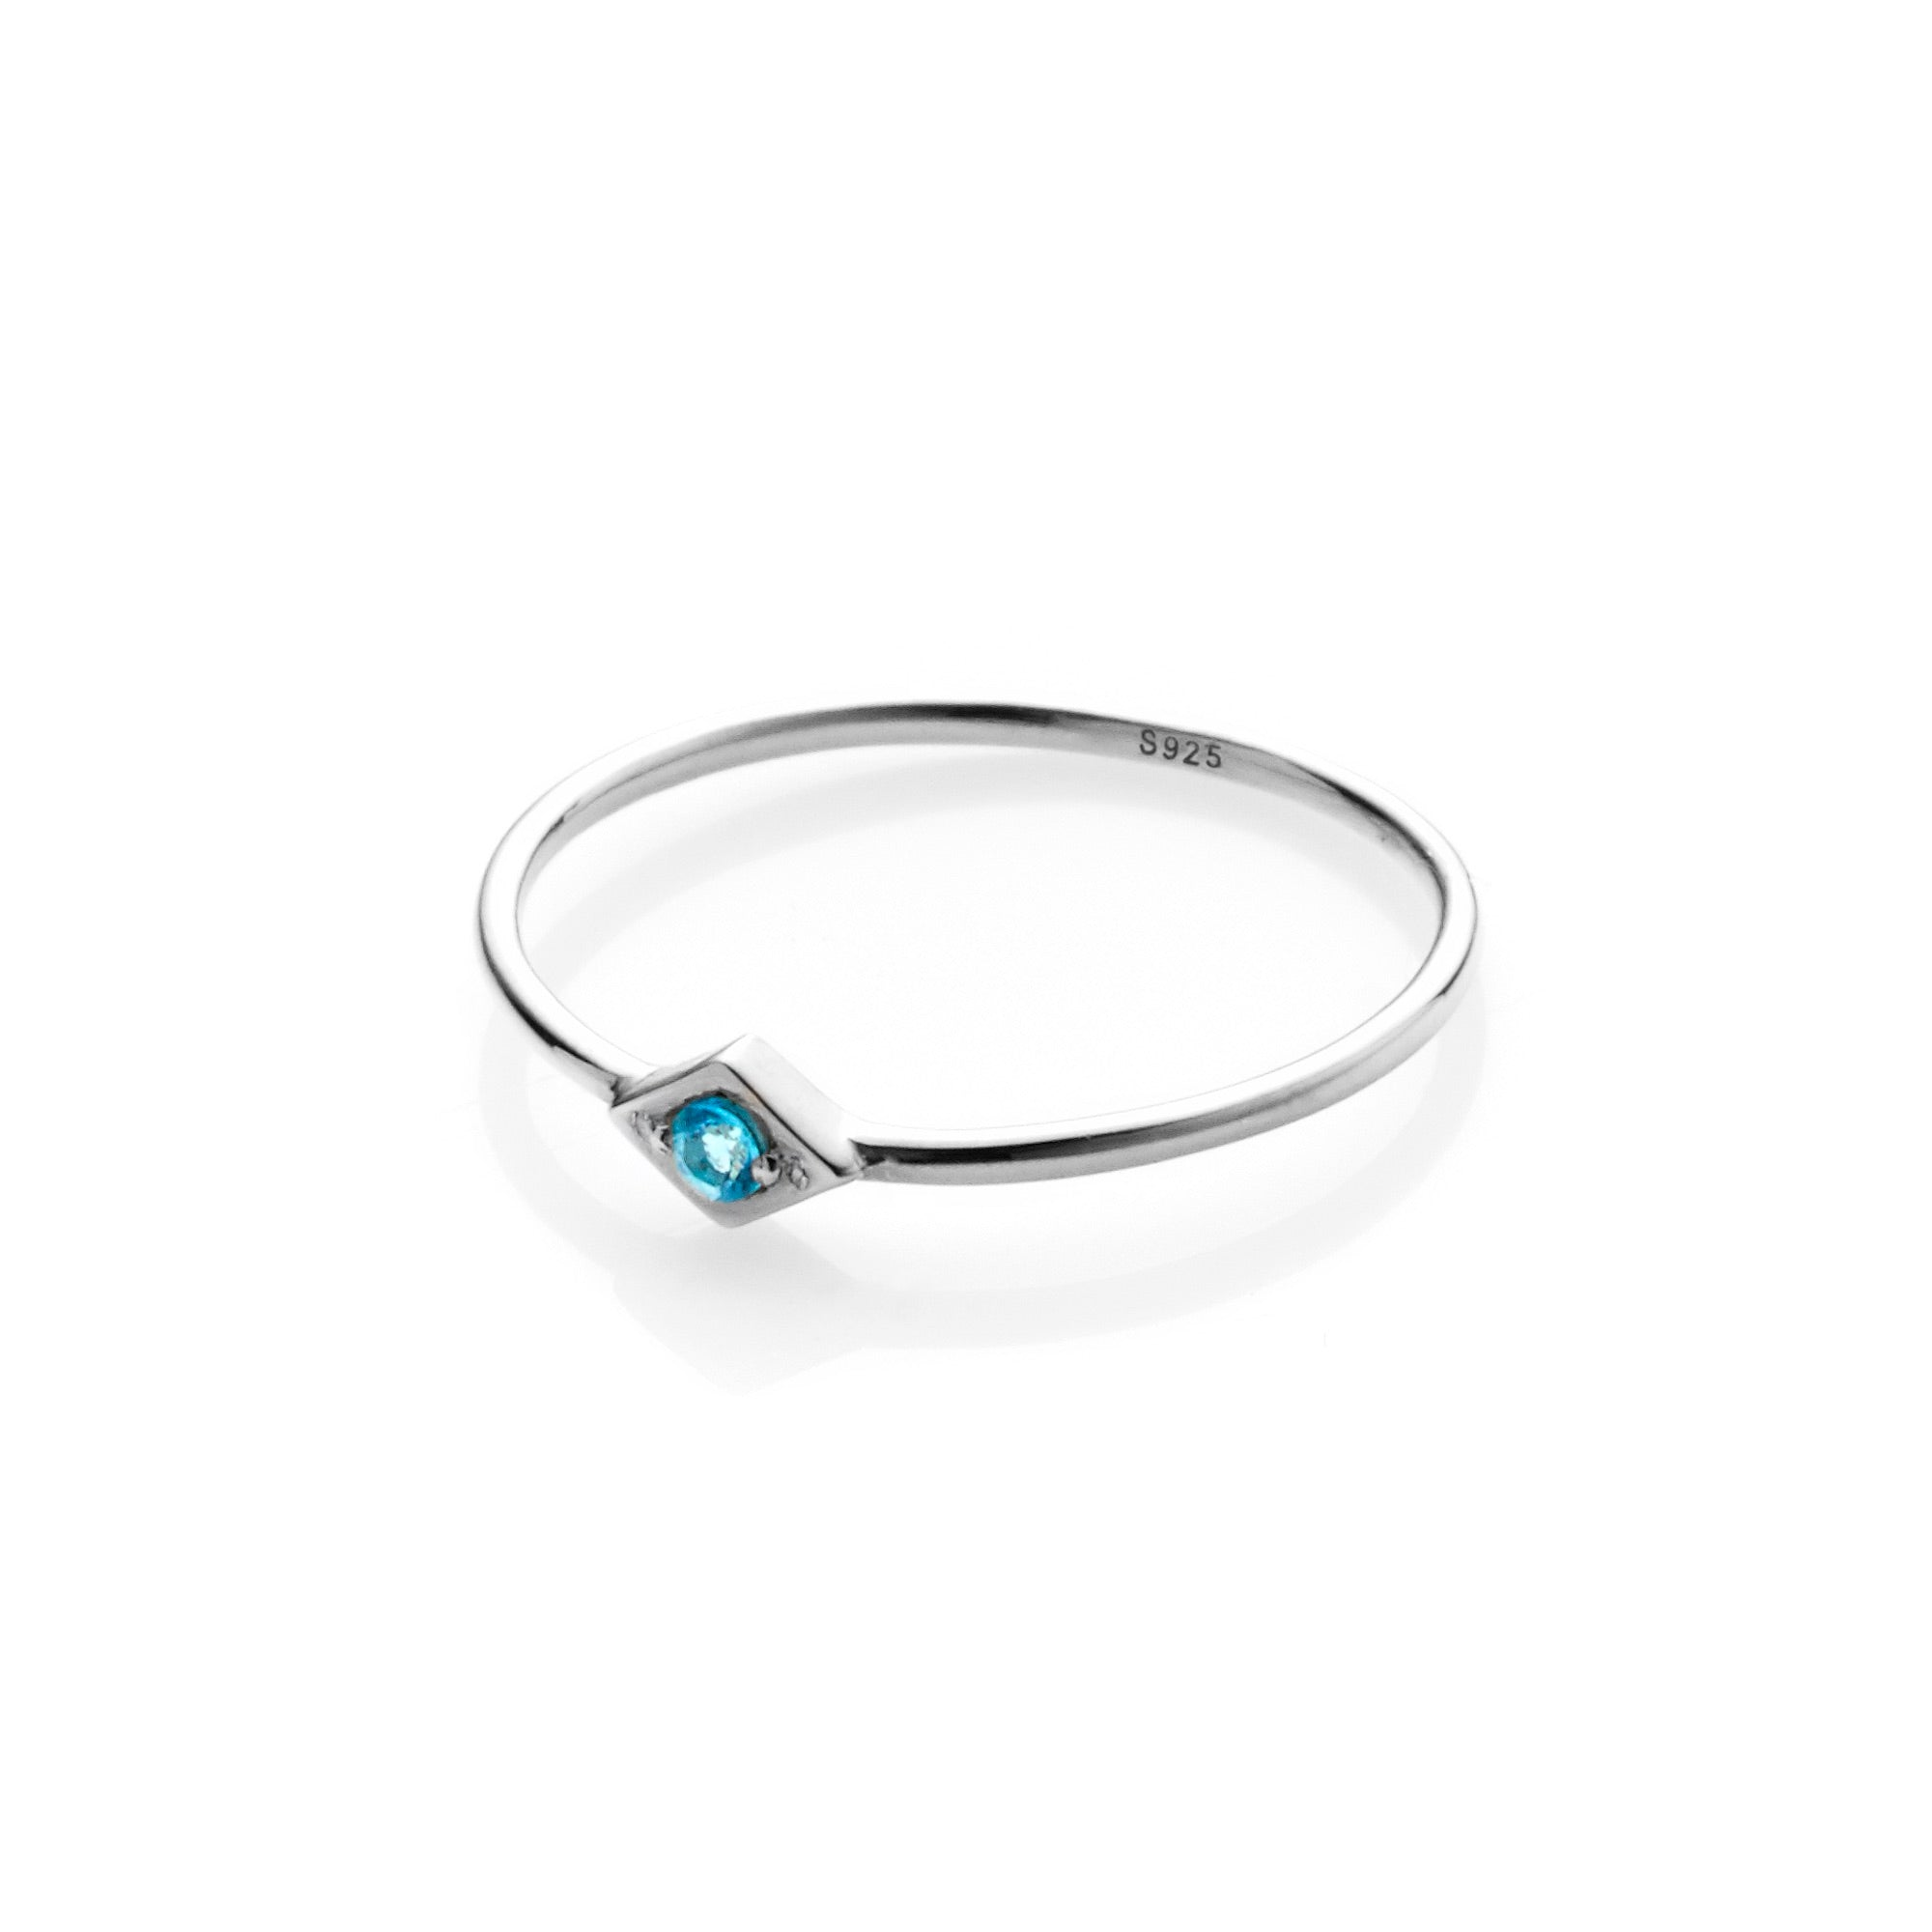 Silk & Steel Jewellery Keepsake ring Blue Topaz and Silver